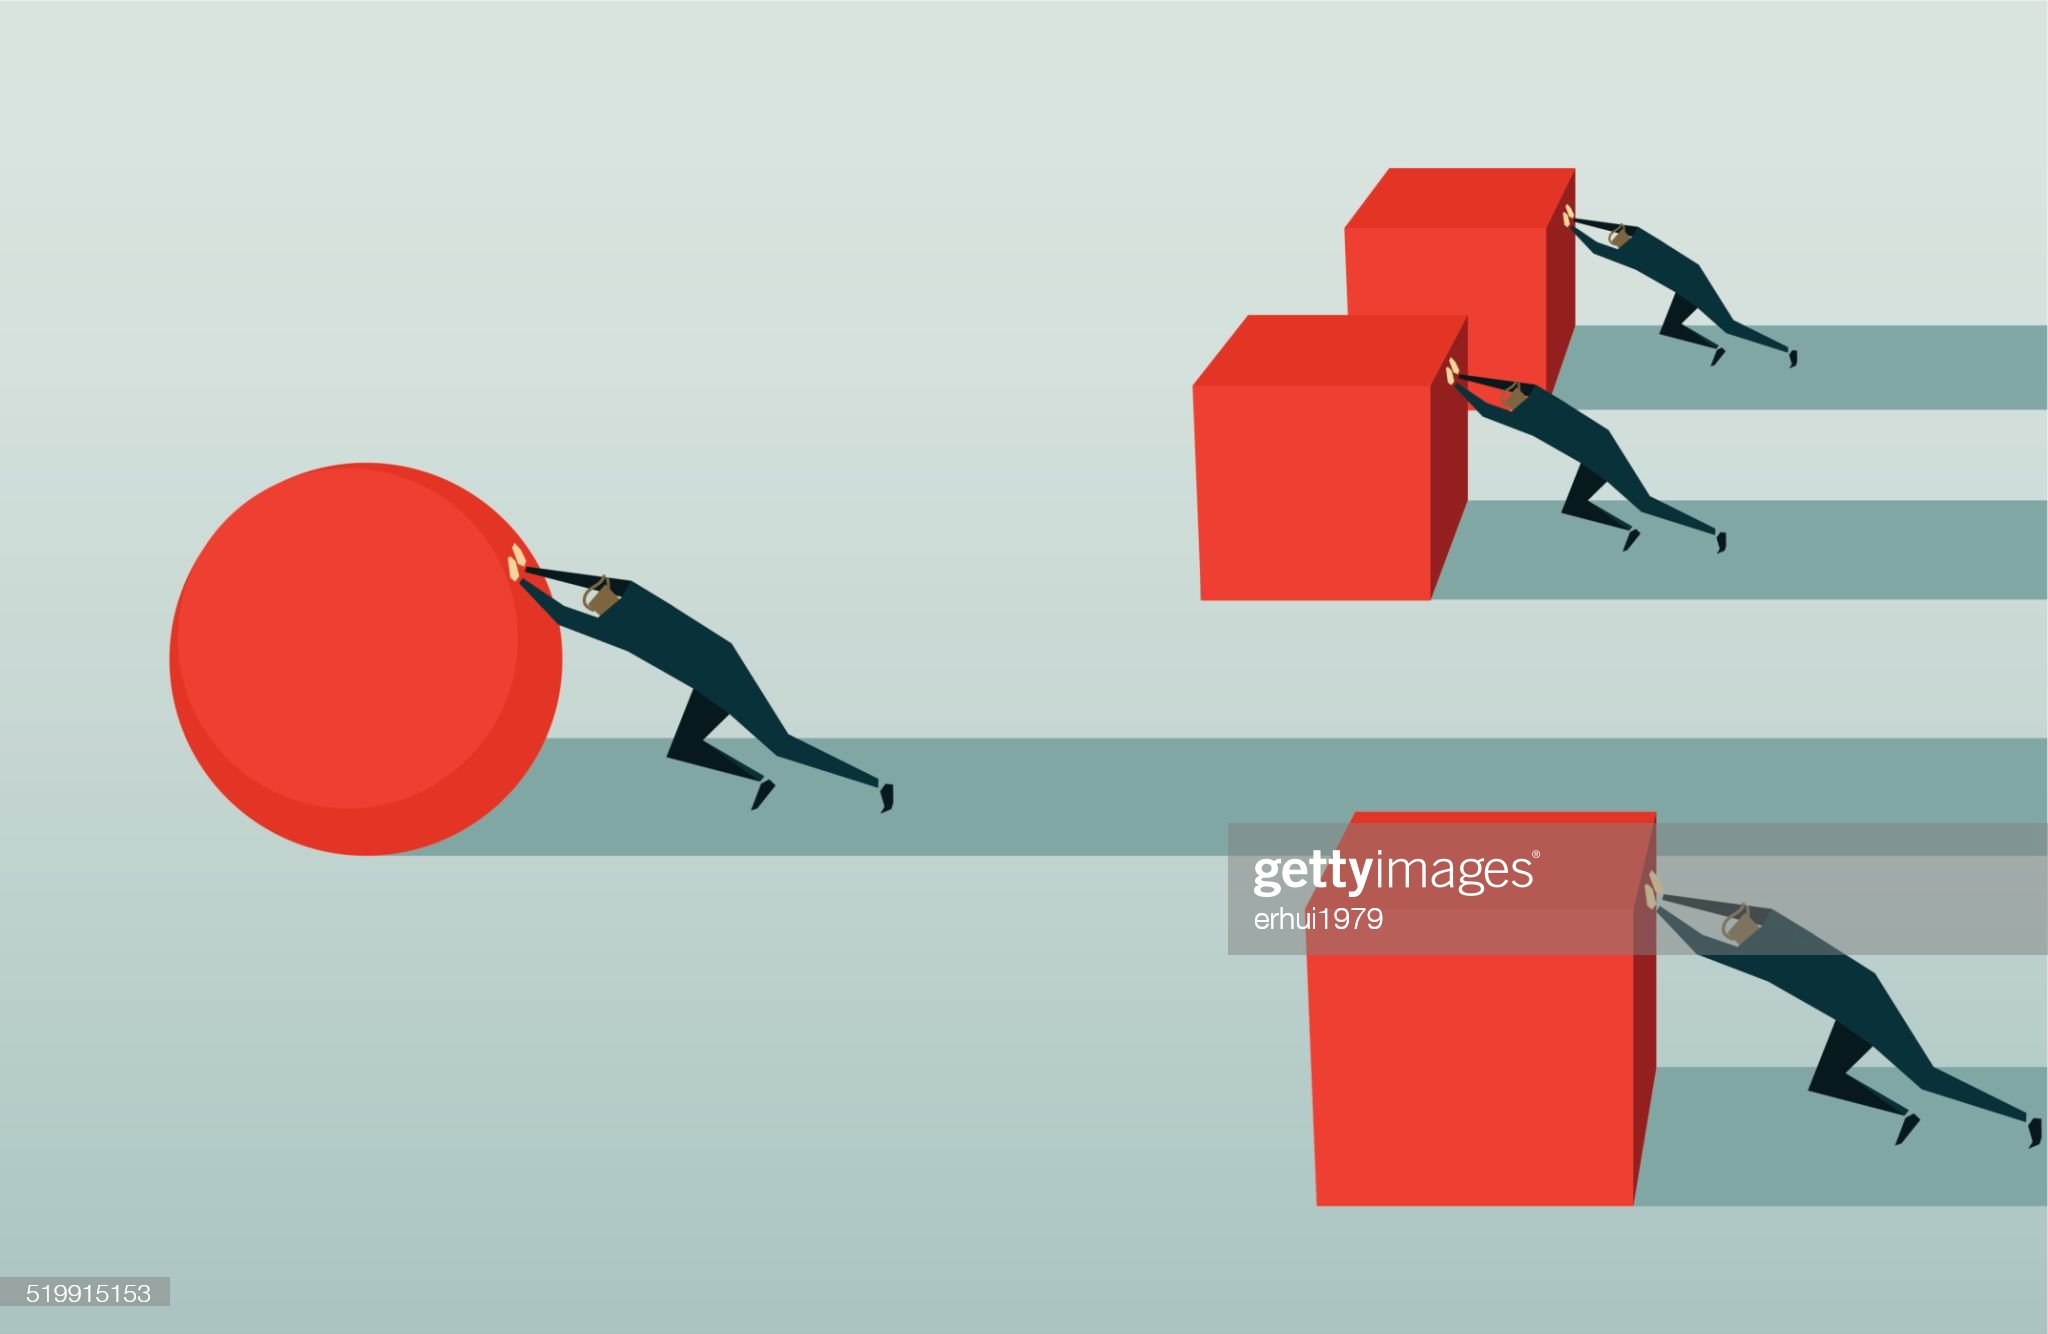 Improvement, Competition, Pursuit, Challenge, Conquering Adversity, Strategy,  Efficiency, Solution : stock illustration